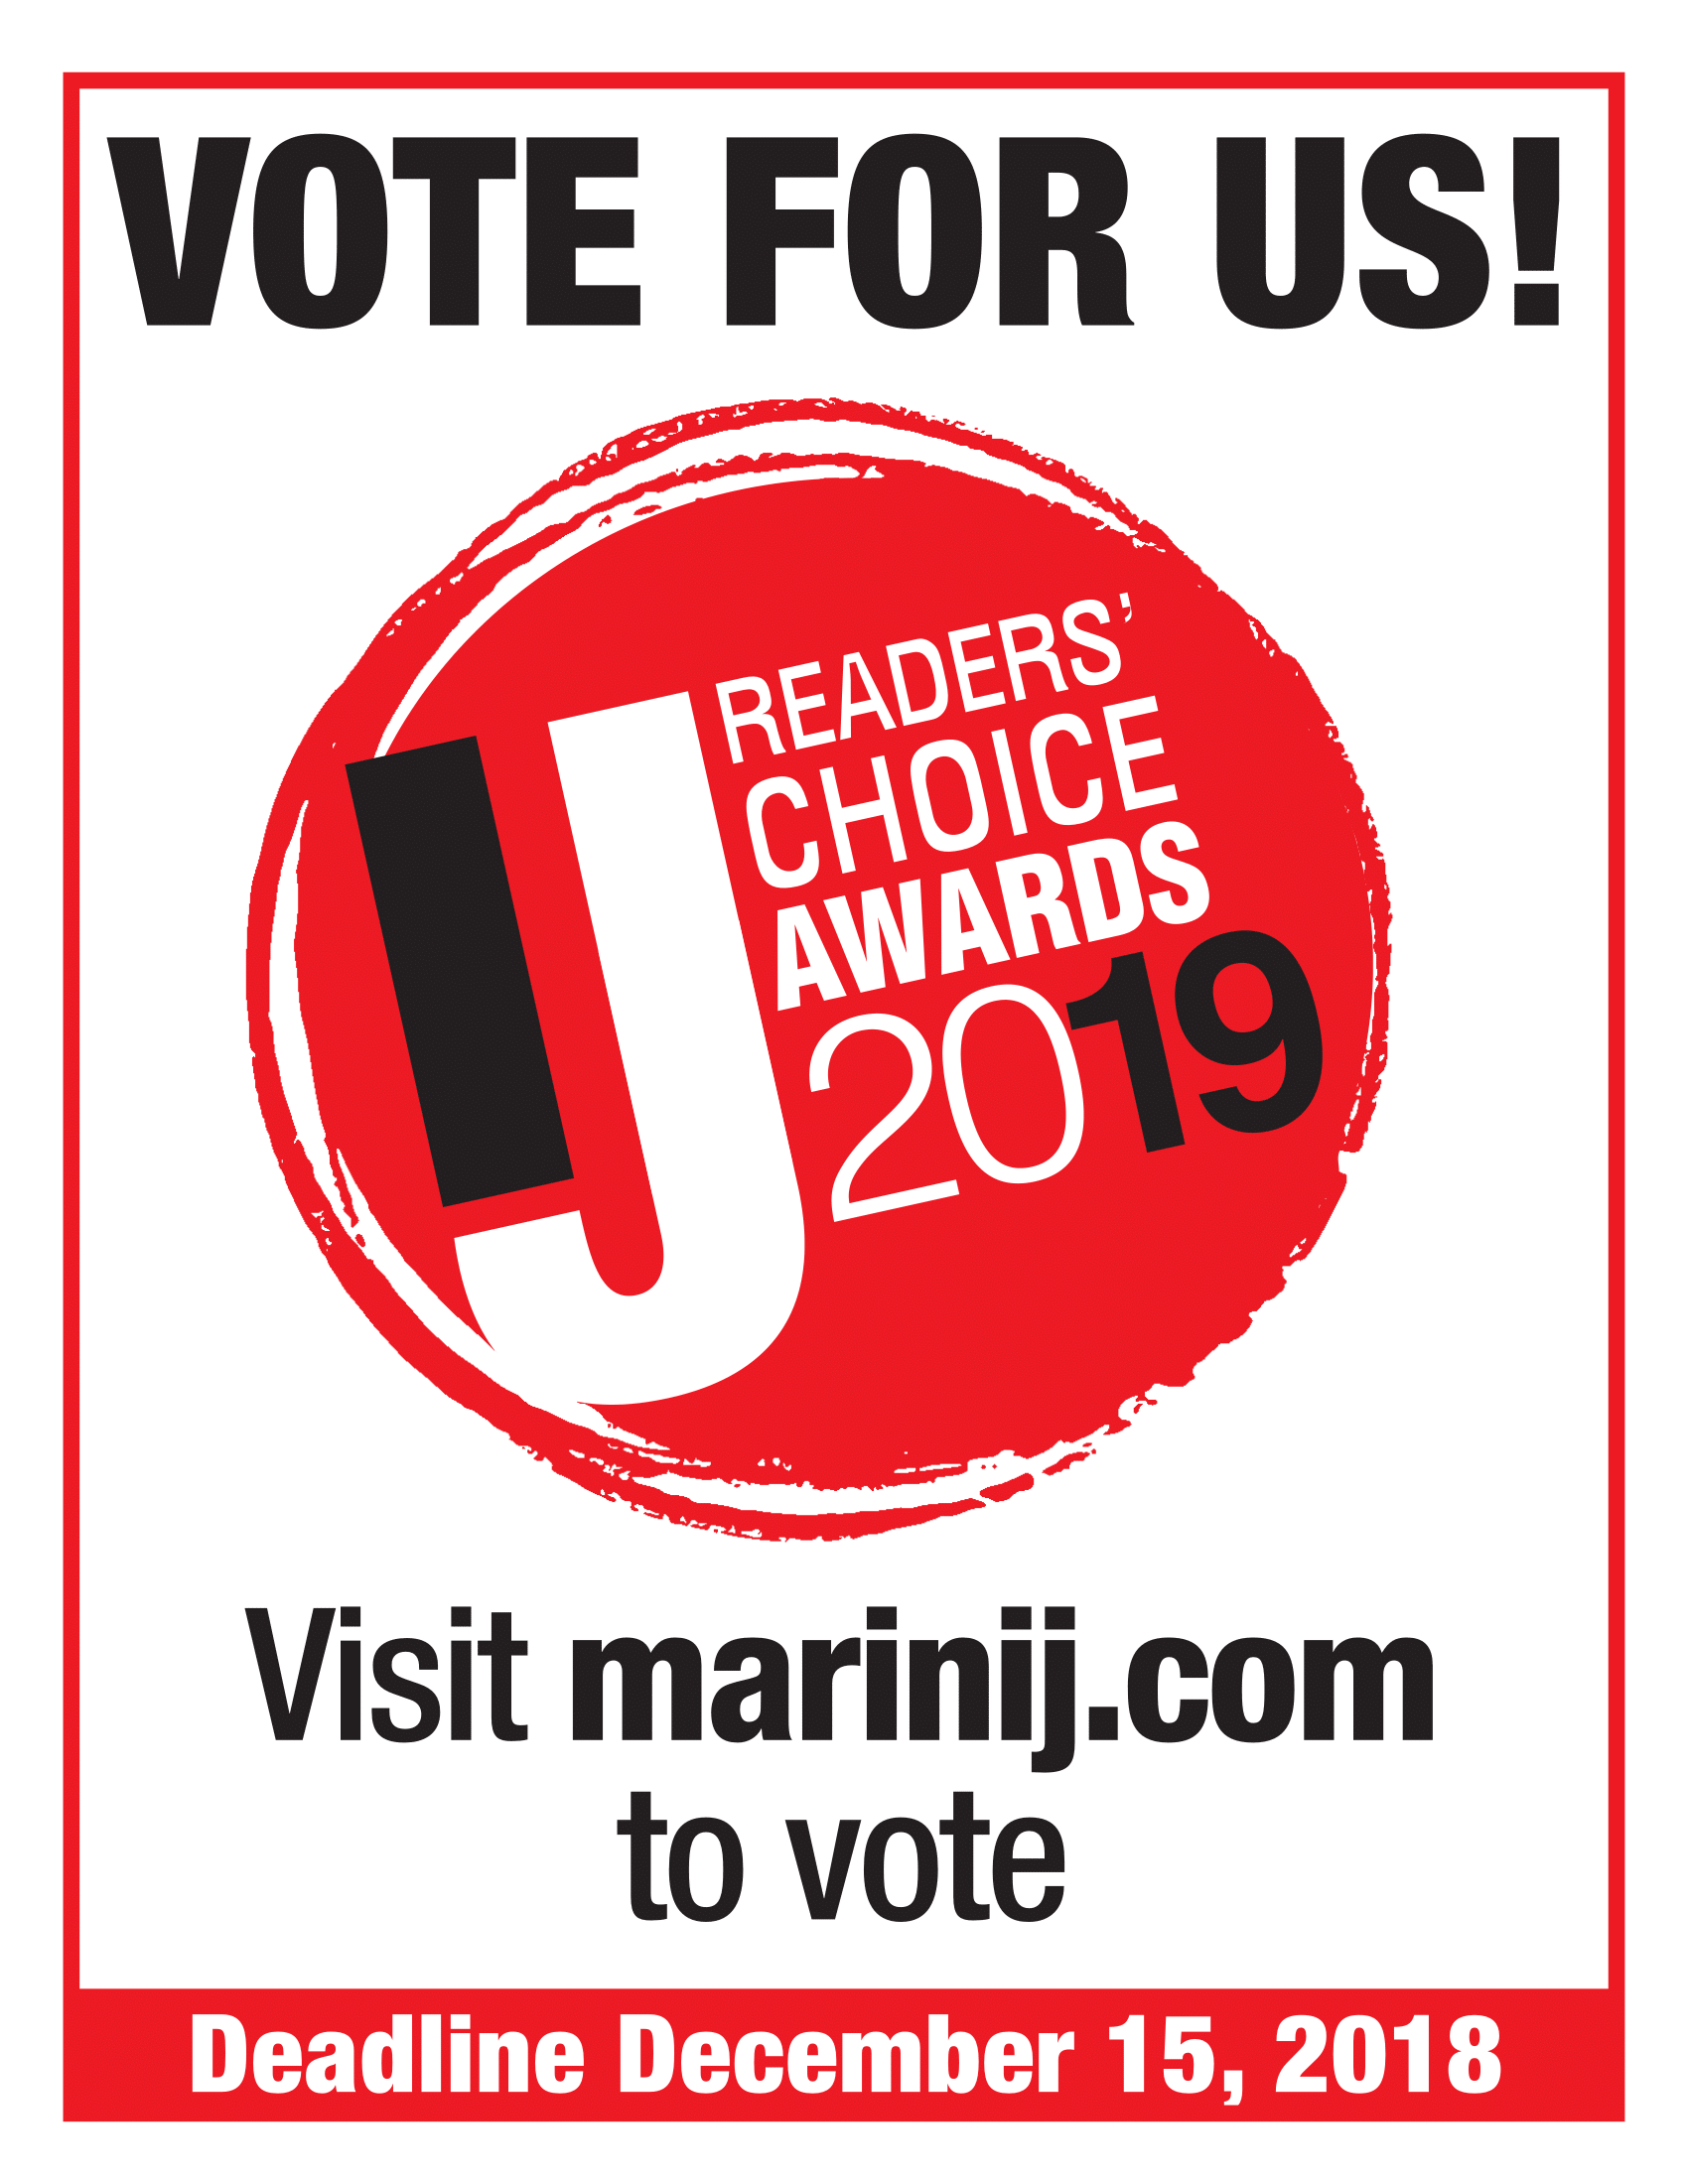 Marin IJ 2019 Readers' Choice Award